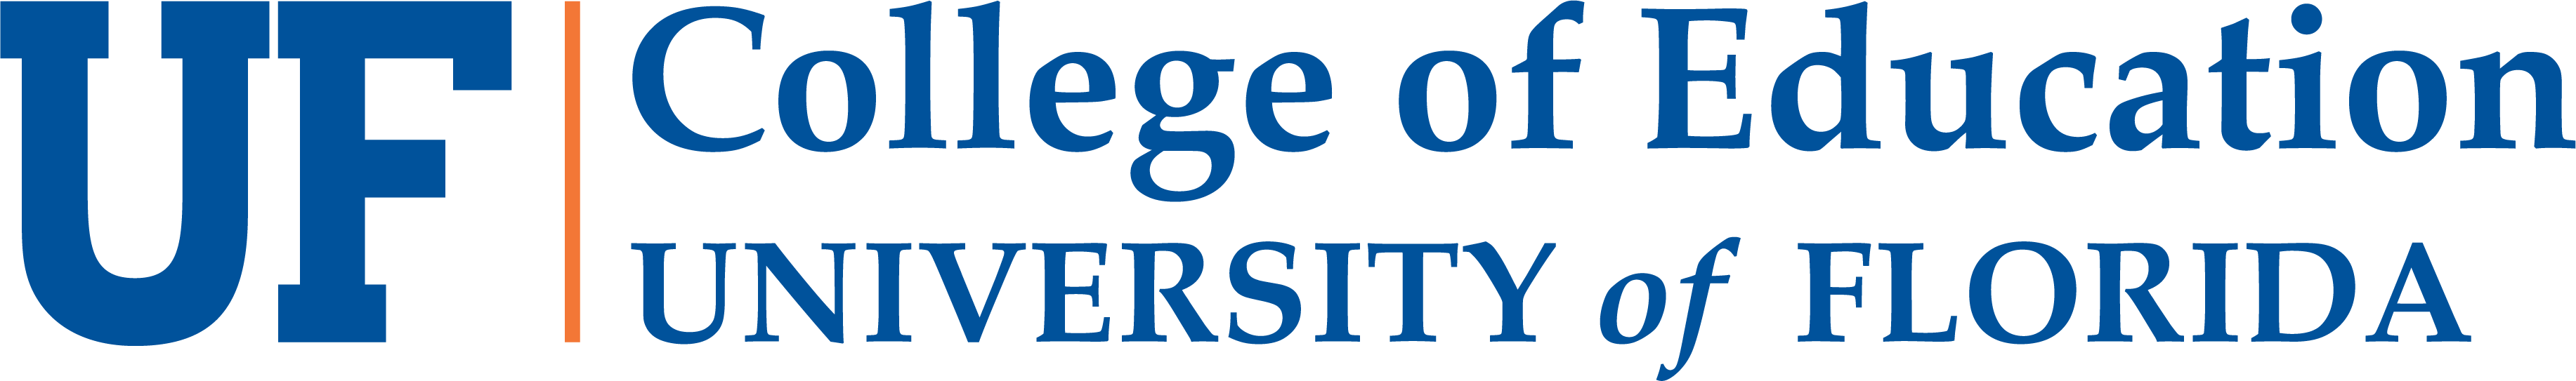 College of Education, University of Florida